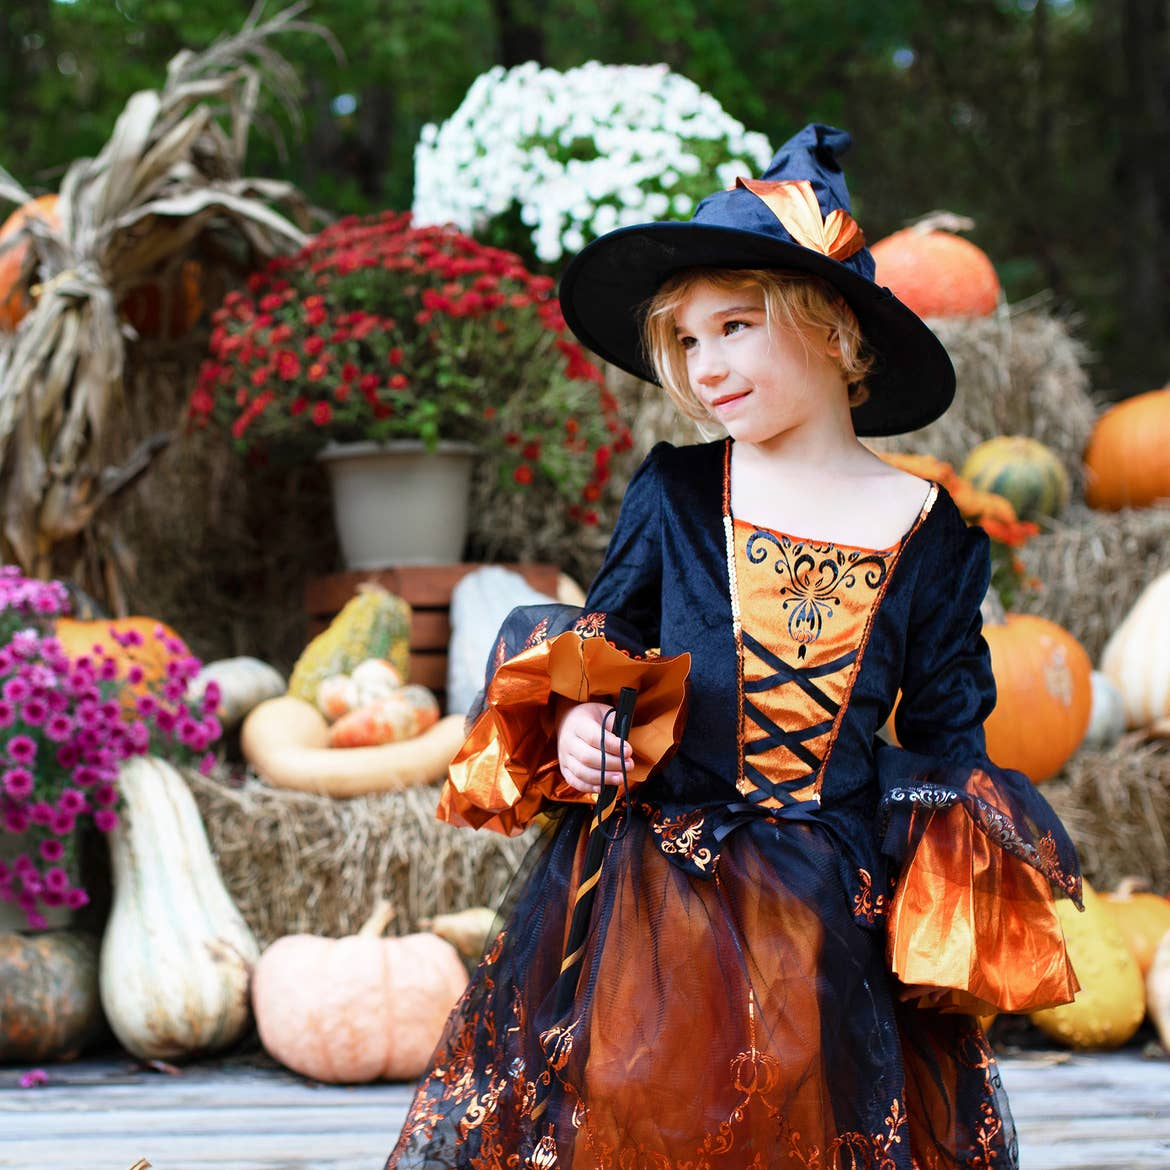 A young girl wears a witch costume near bales of hay.